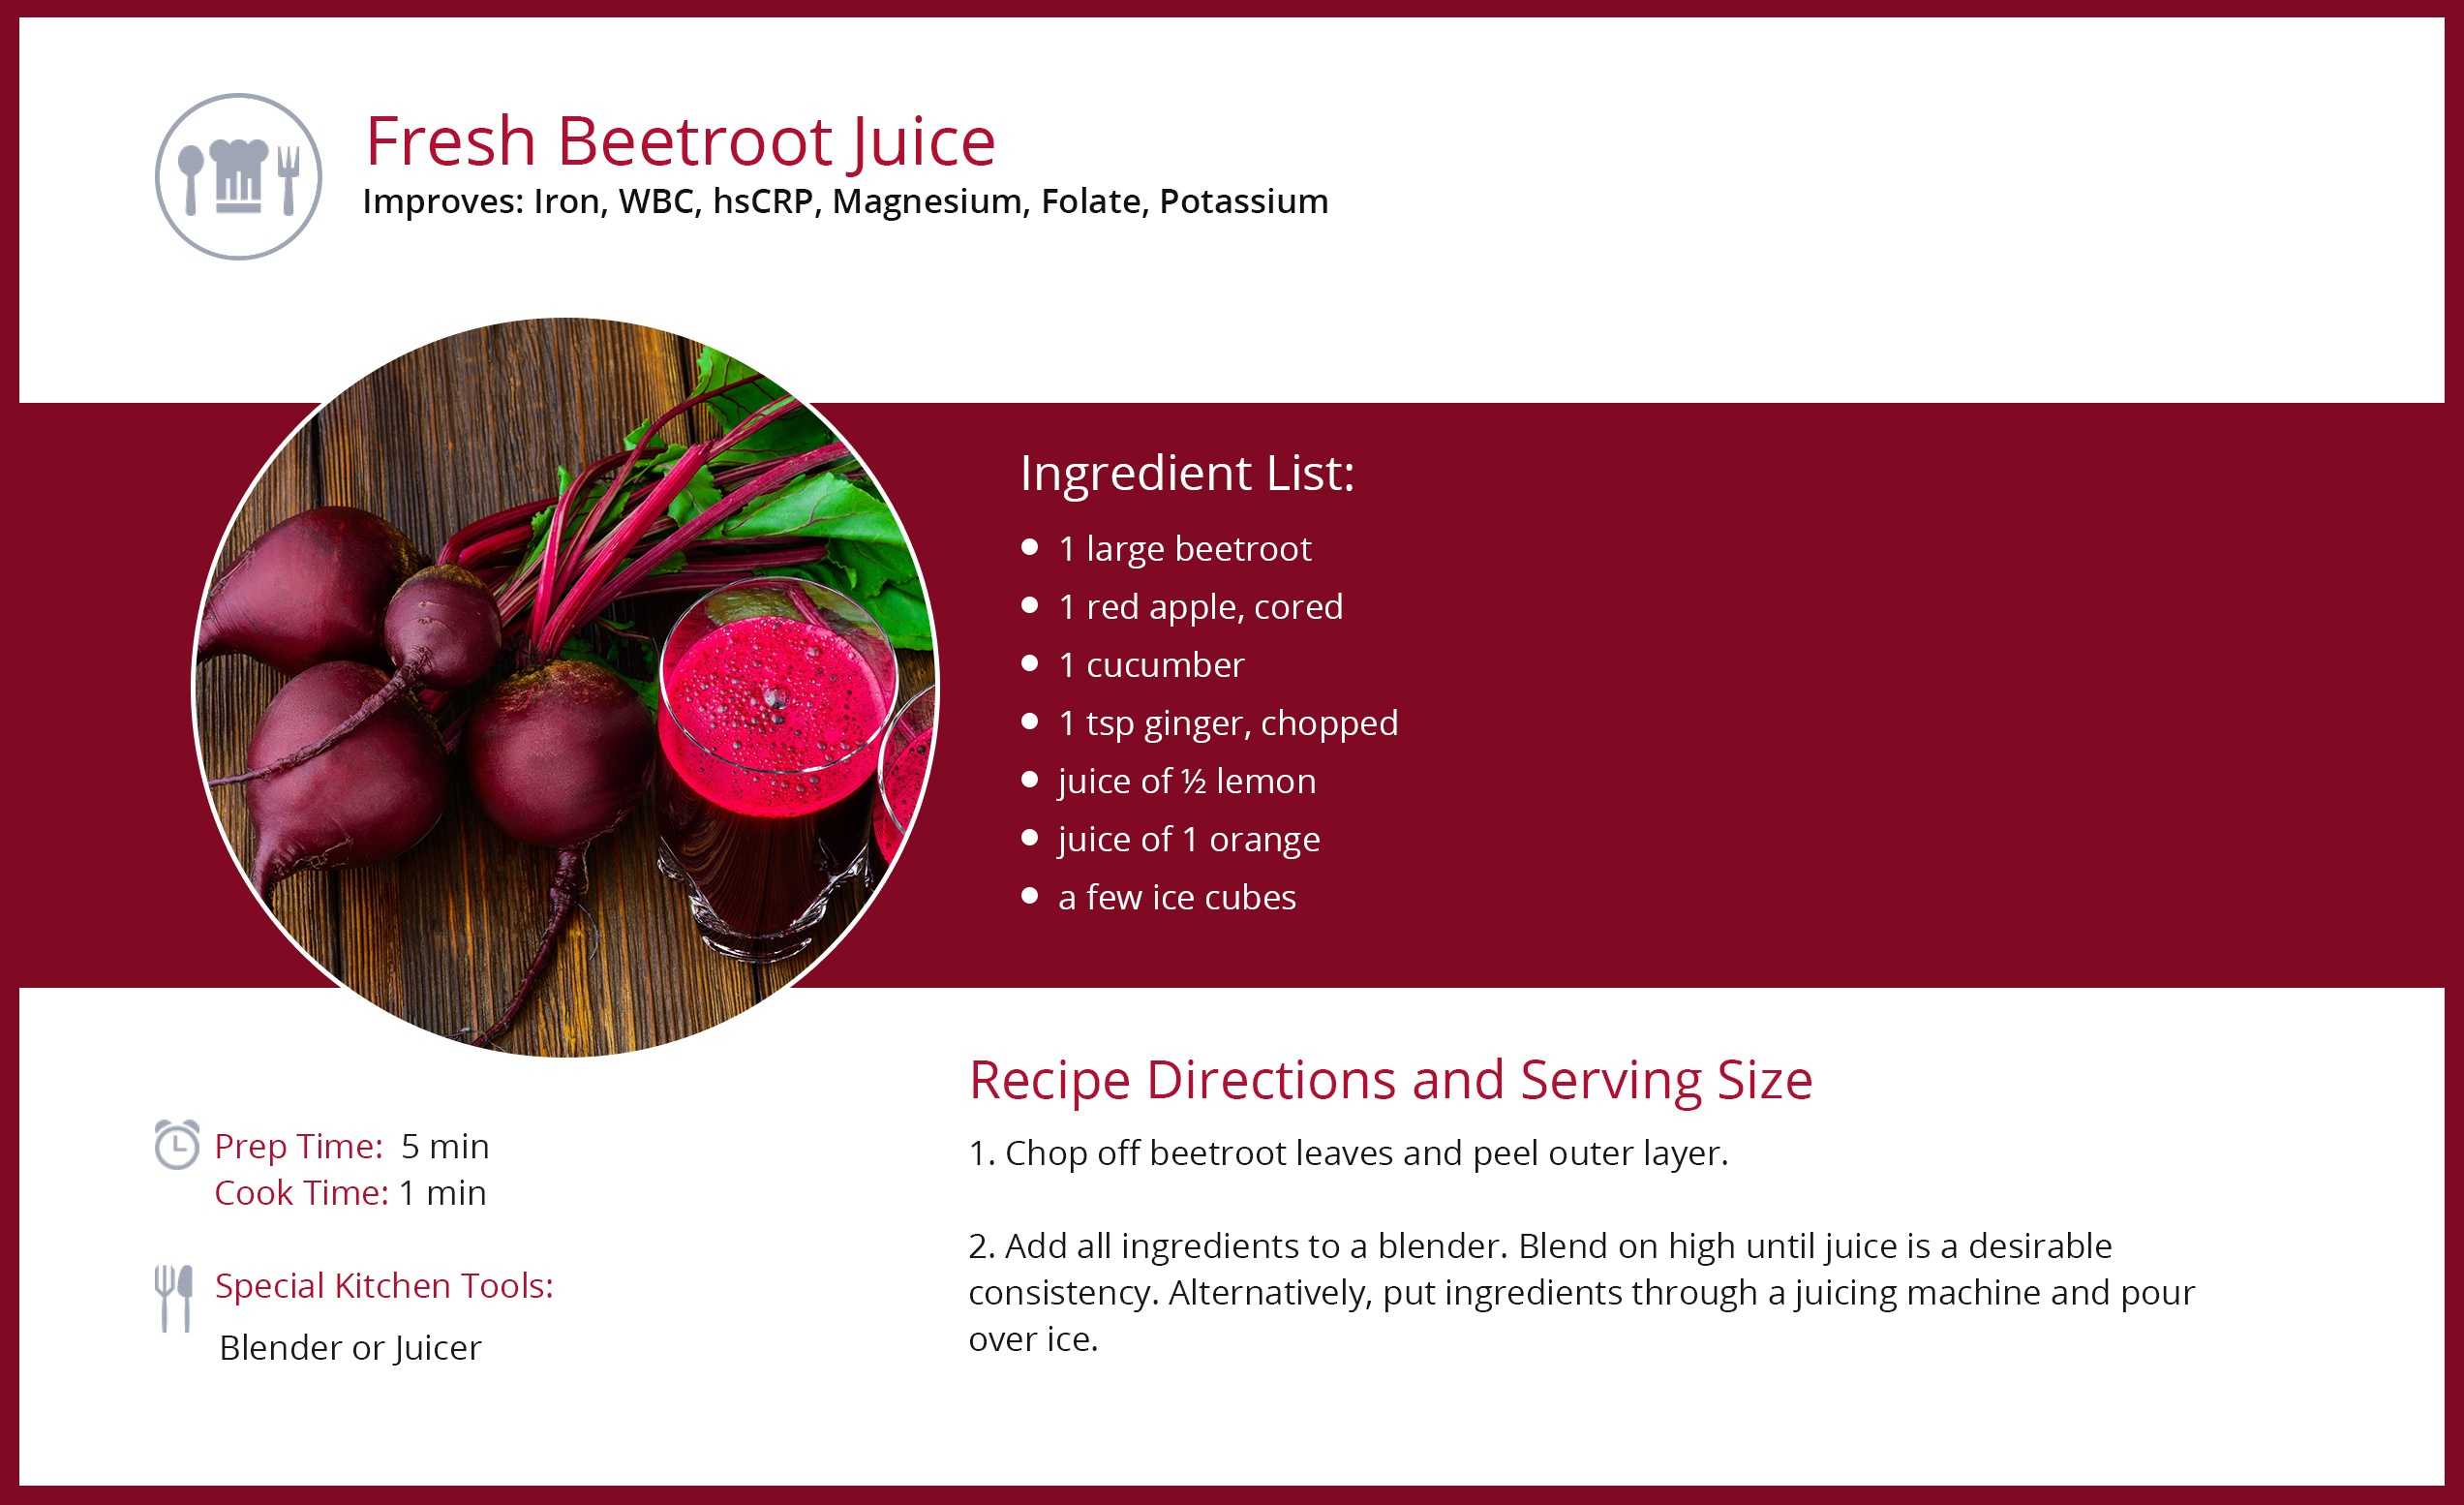 Fresh_Beetroot_Juice_red.jpg